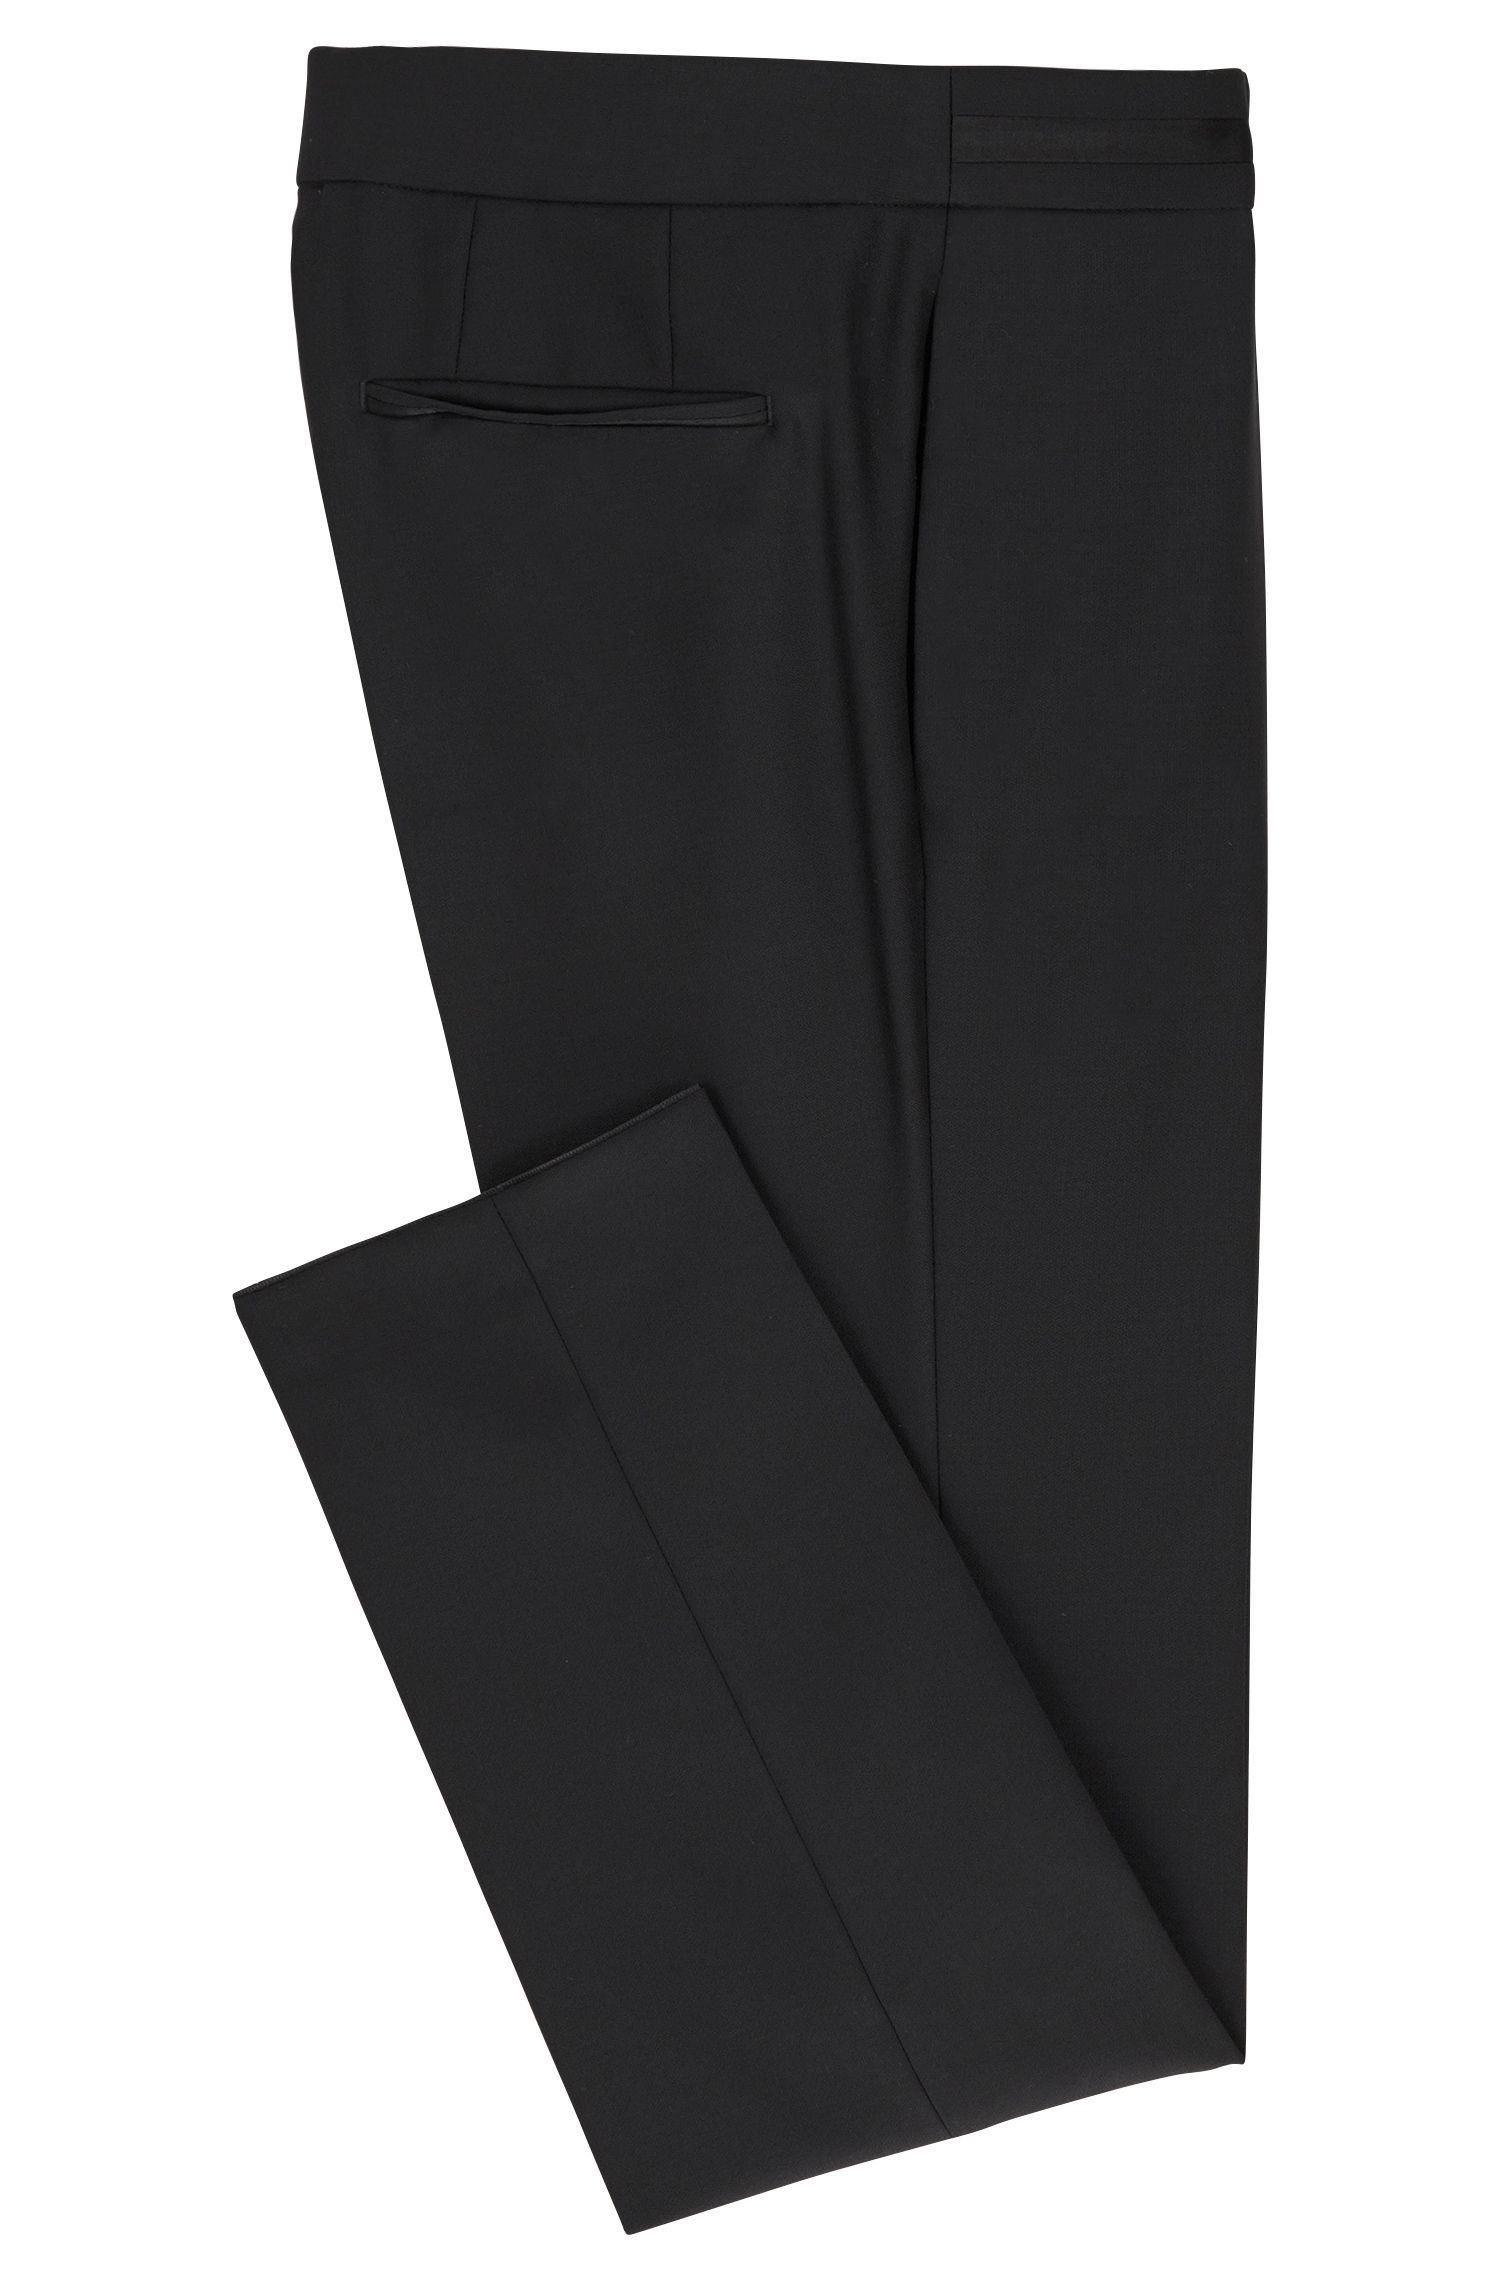 Pantaloni formali slim fit in lana vergine